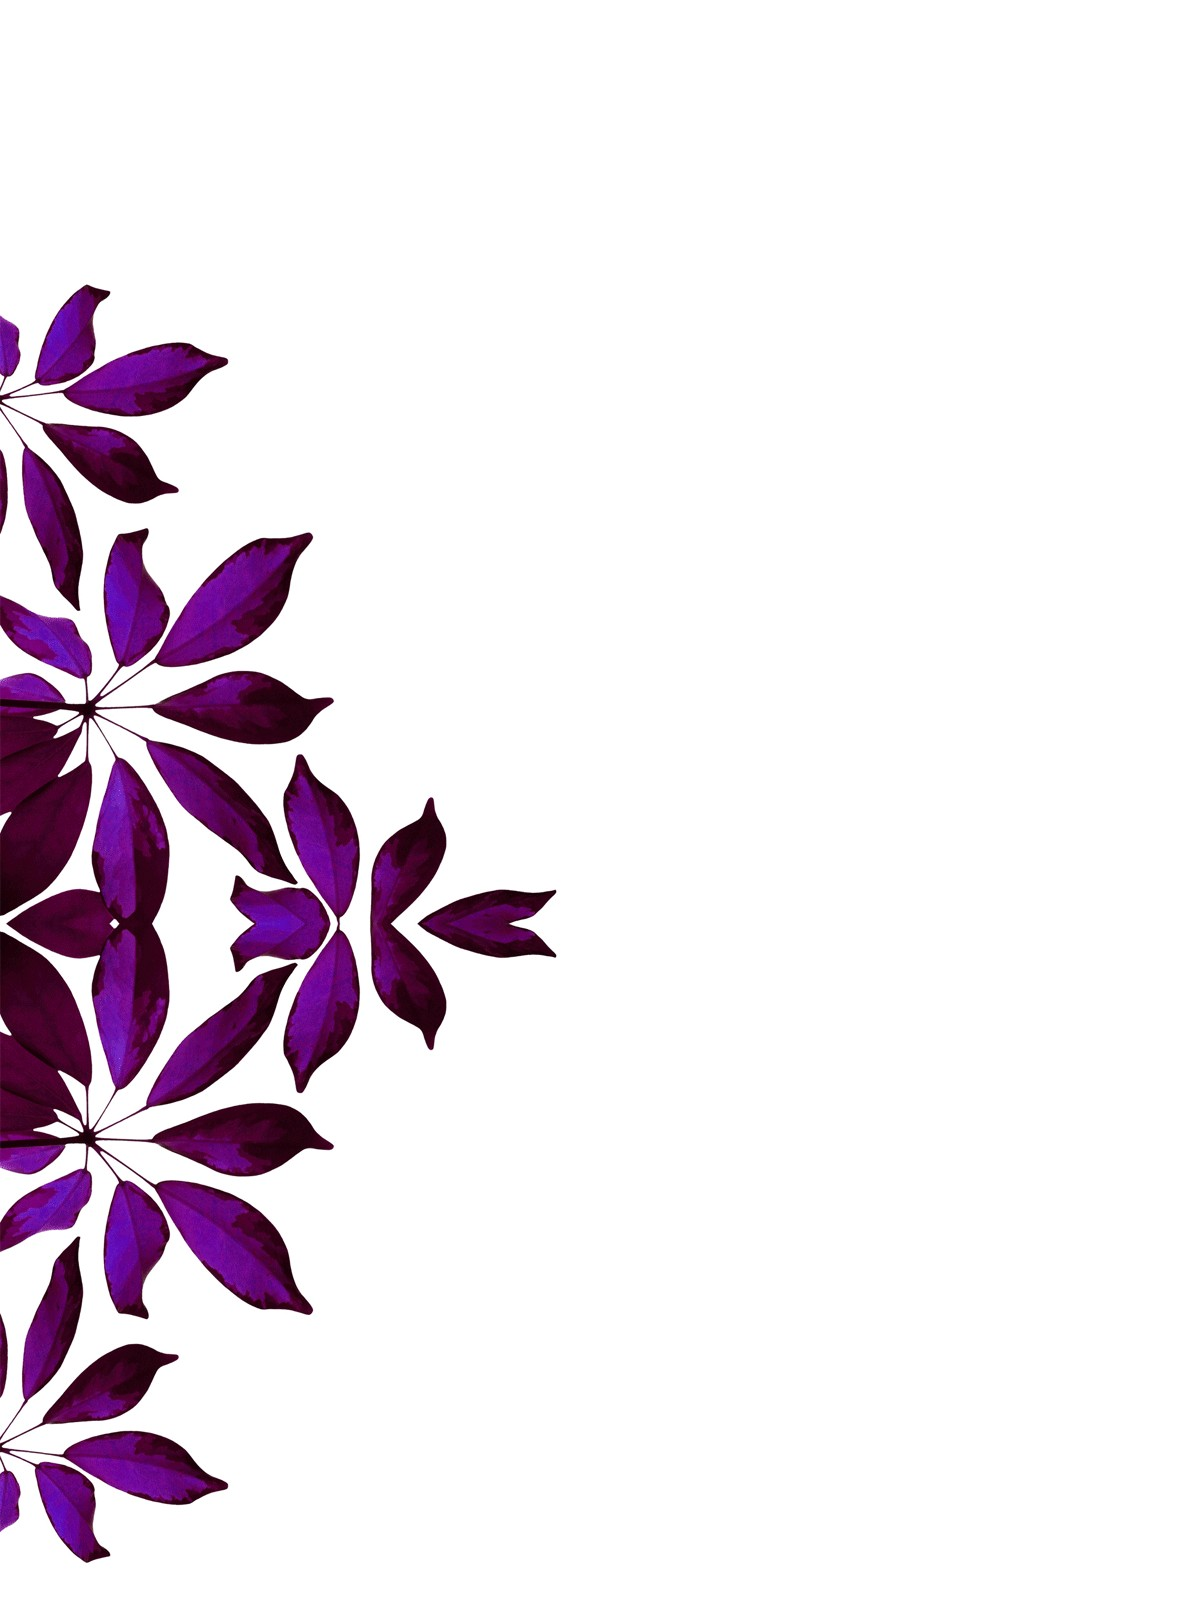 Free Images Of Borders Designs, Download Free Clip Art, Free Clip.